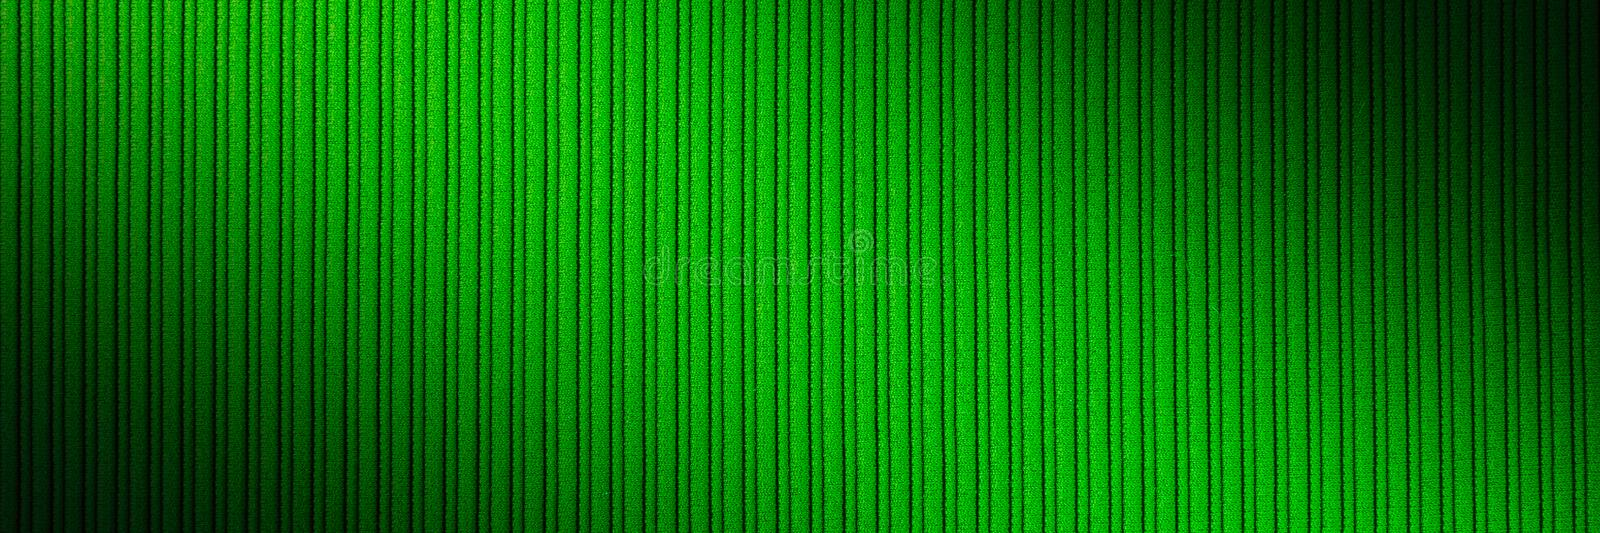 Decorative background green color, striped texture, diagonal gradient. Wallpaper. Art. Design royalty free stock image